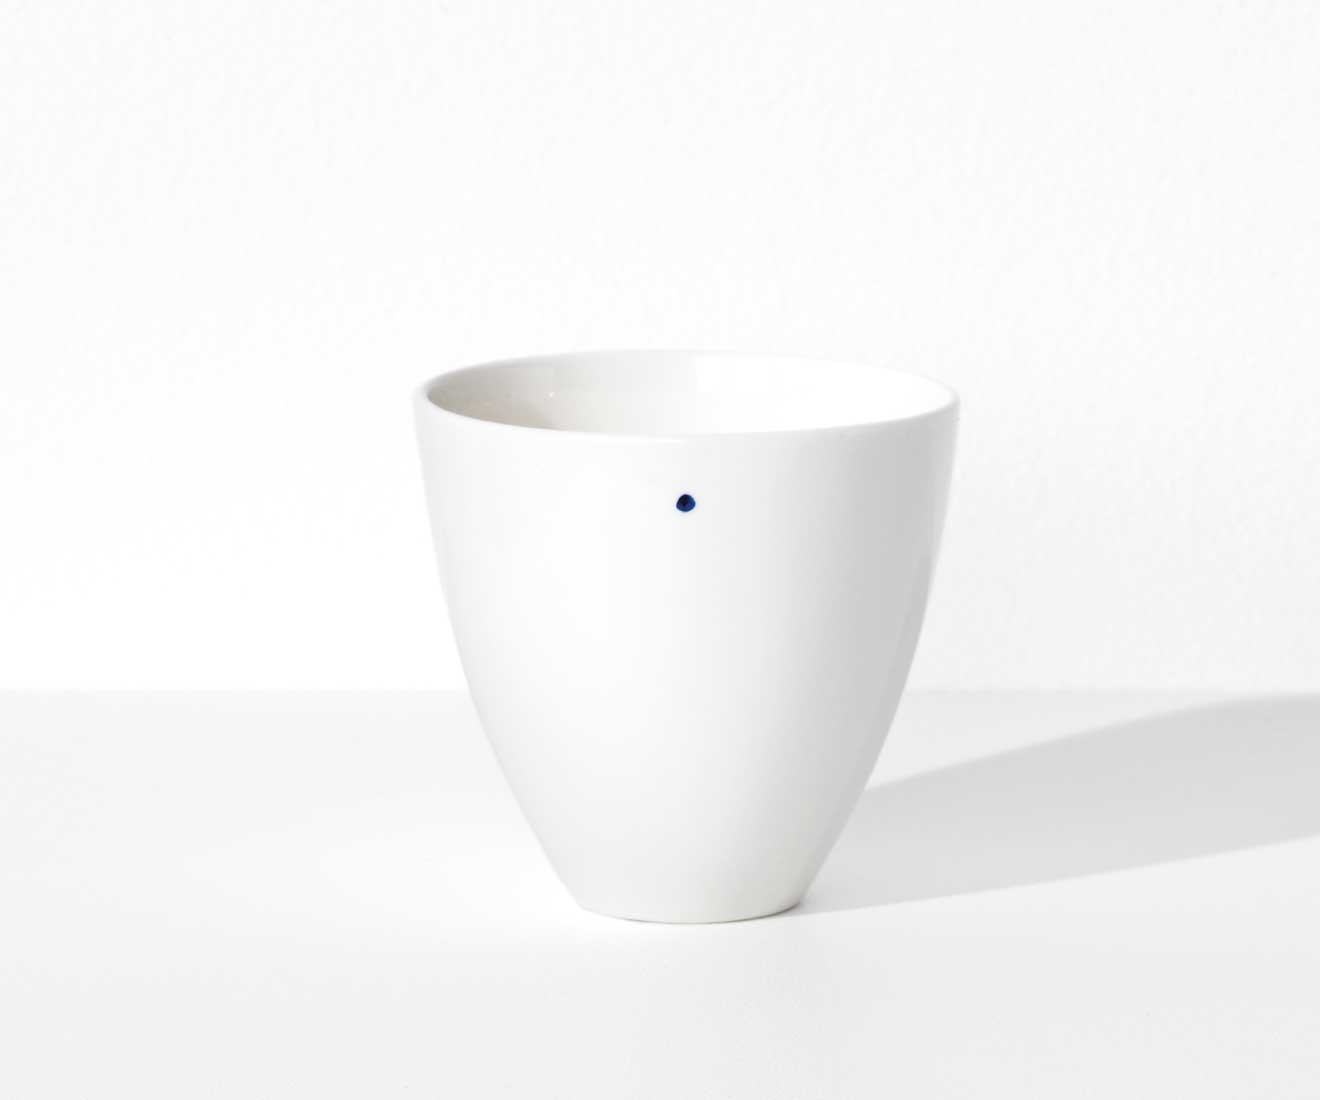 Motarasu Products - Shiro bowl Small with 1 dot by Stilleben